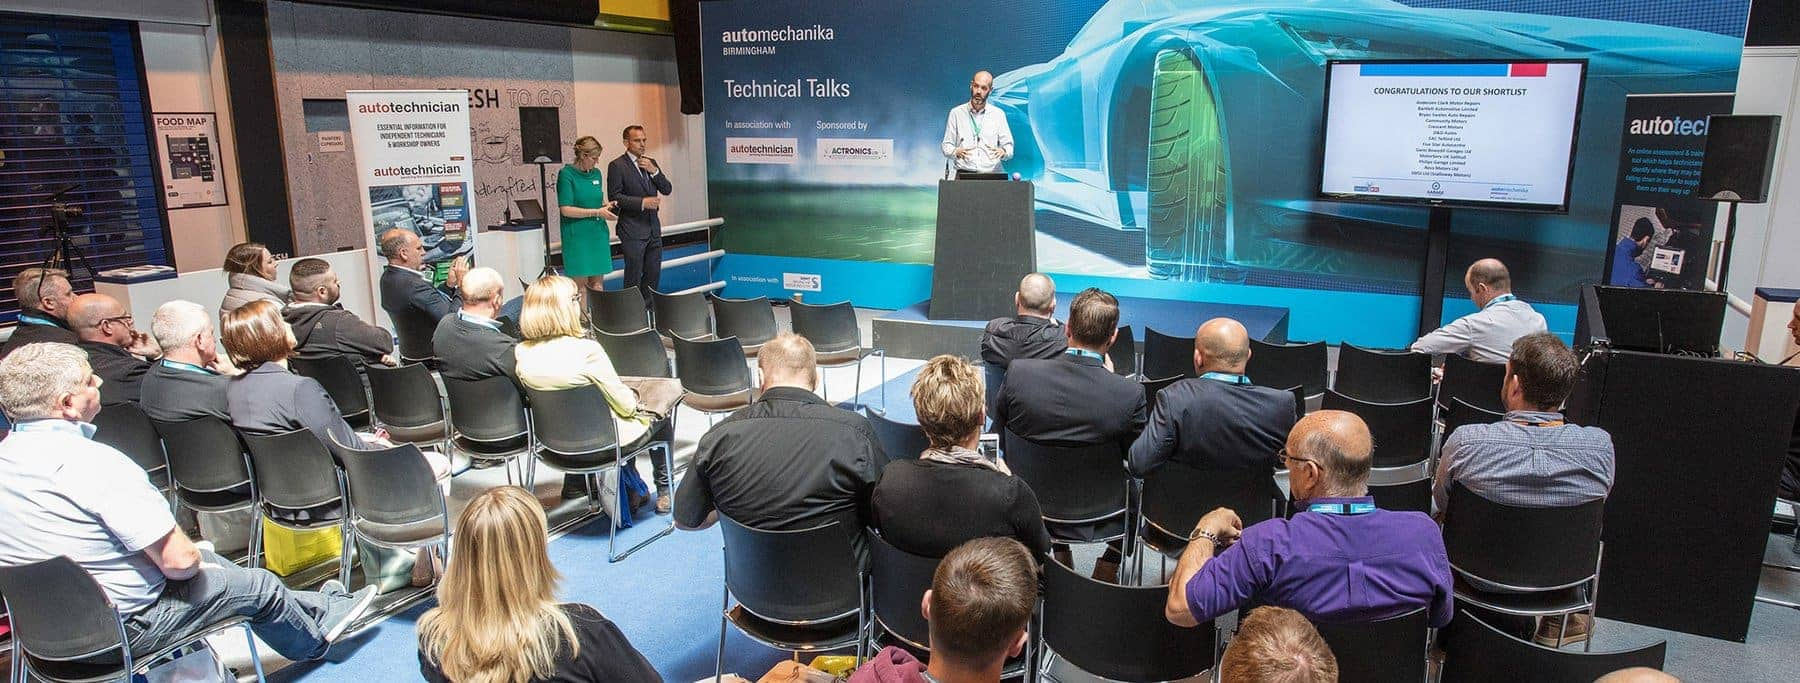 Automechanika Birmingham – Full Stack